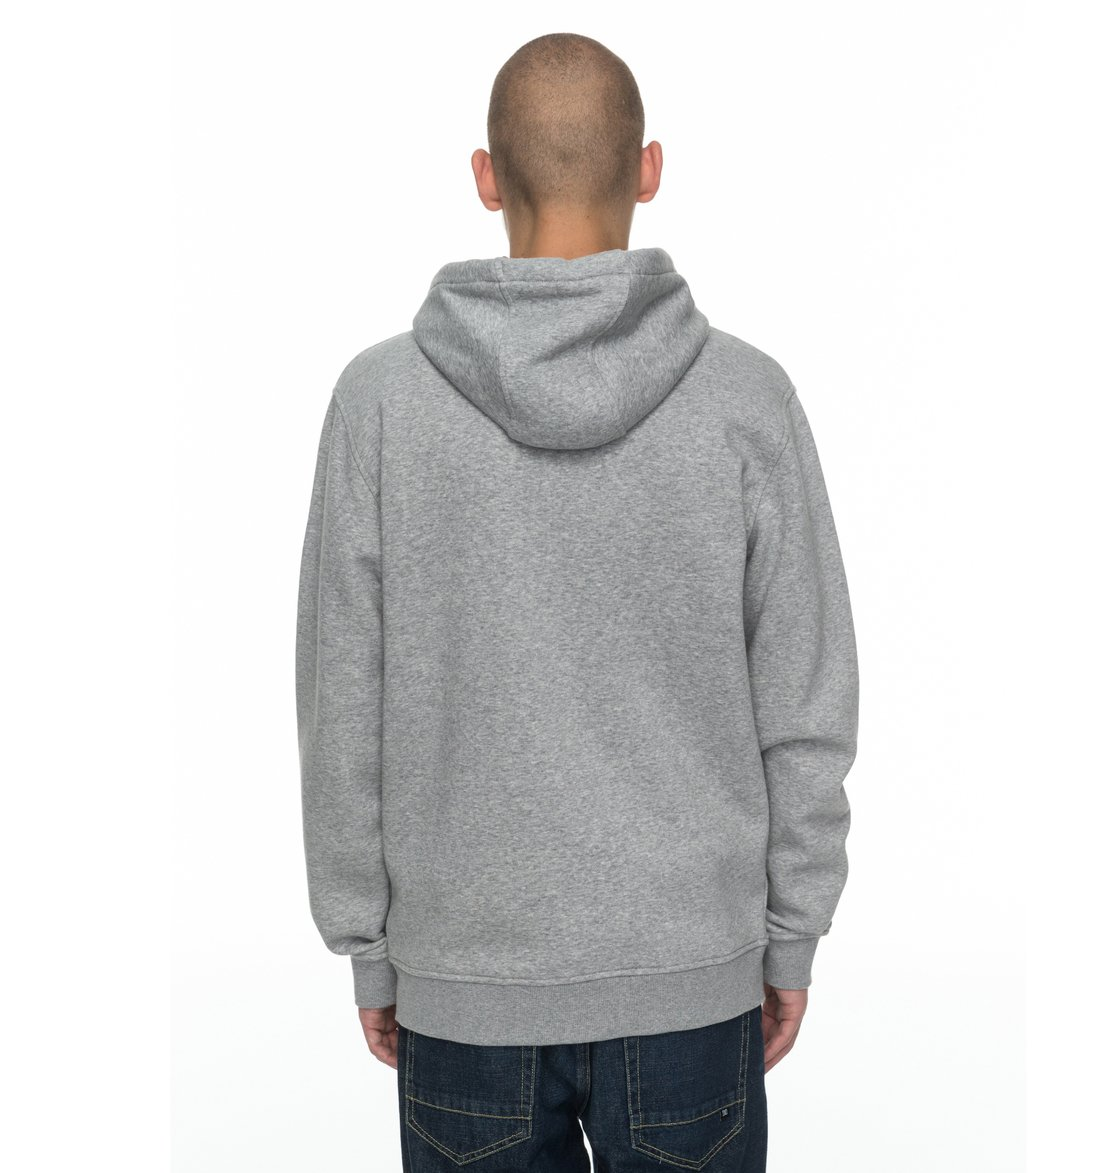 dc hook up hoodie Discover all dc shoes men's sale & clearance sweatshirts hook up ‑ zip-up hoodie € 76,00 € 53,20 sale -30% save quick view cappell - sweatshirt.